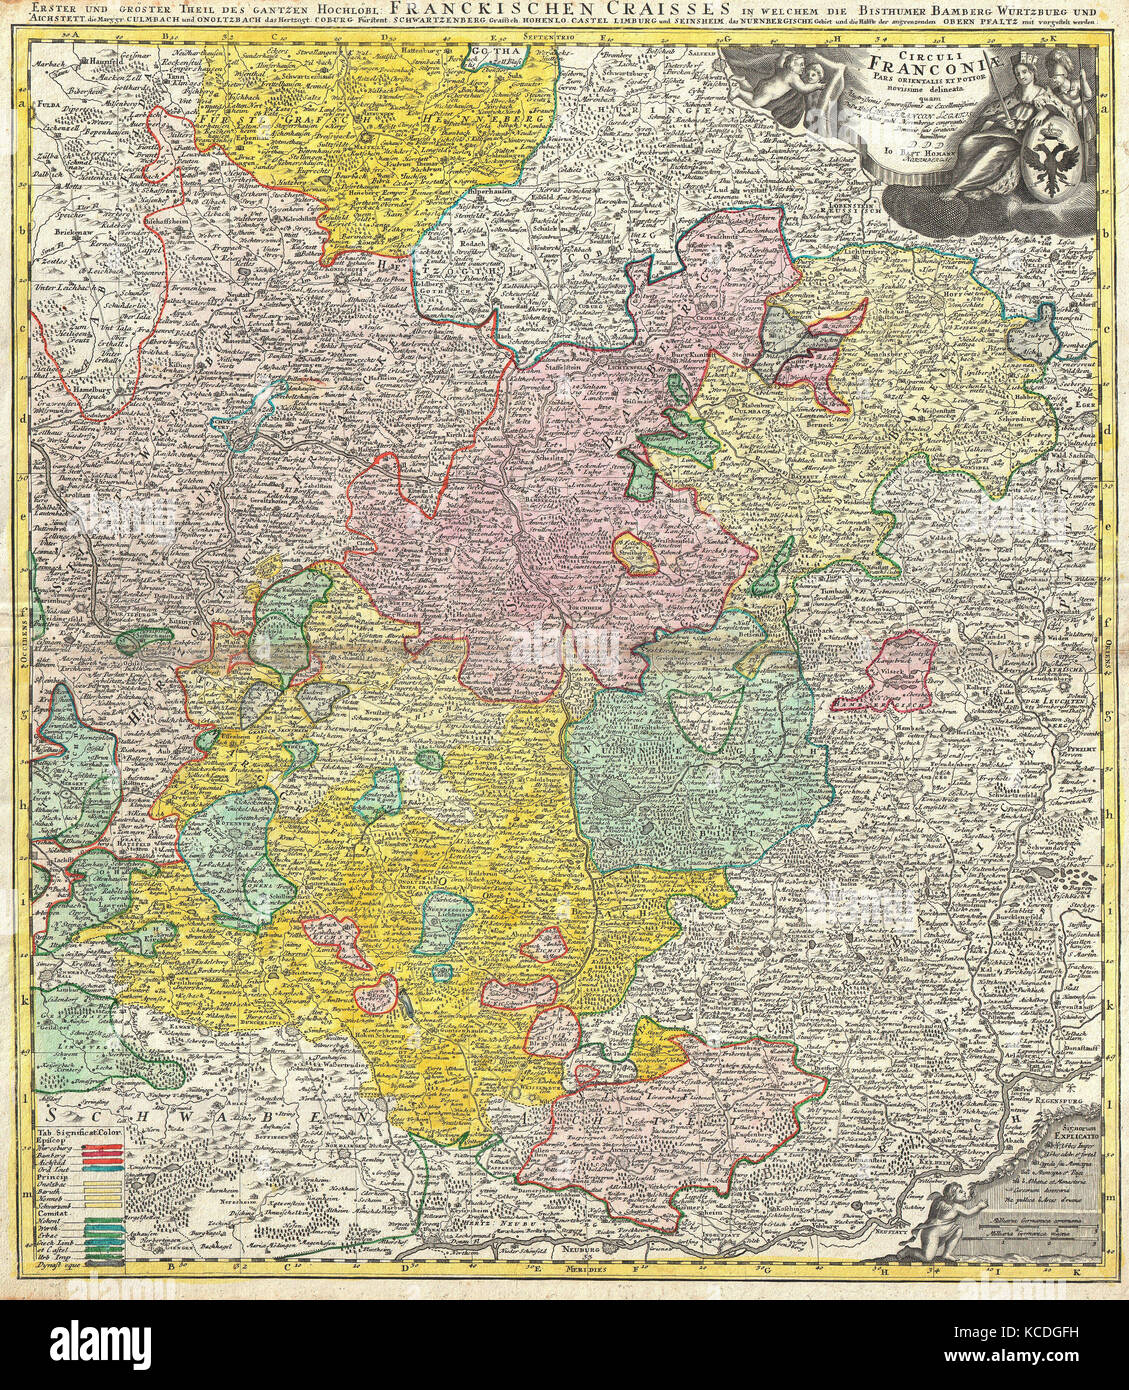 1720, Homann Map of Franconia, Germany, Bavaria, Bamberg, Würtzburg, Nuremberg Stock Photo